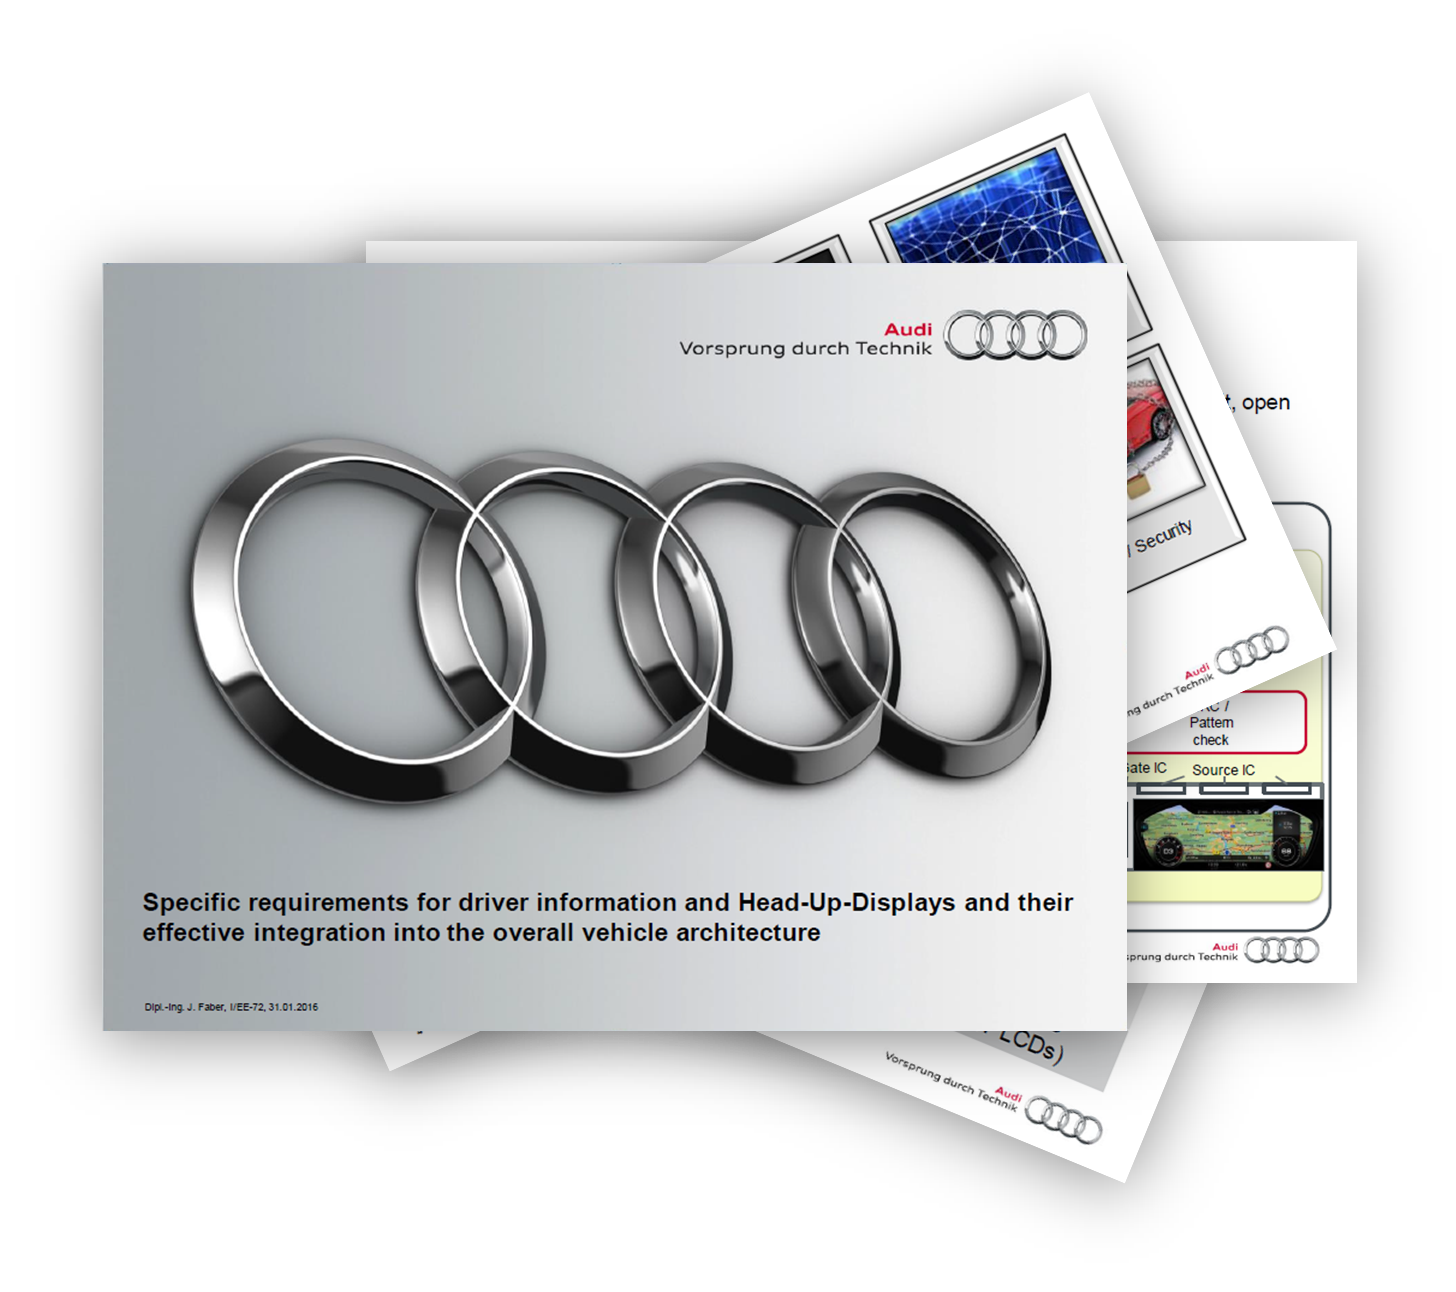 Jan Faber from Audi about specific requirements for driver information and Head-Up-Dispays